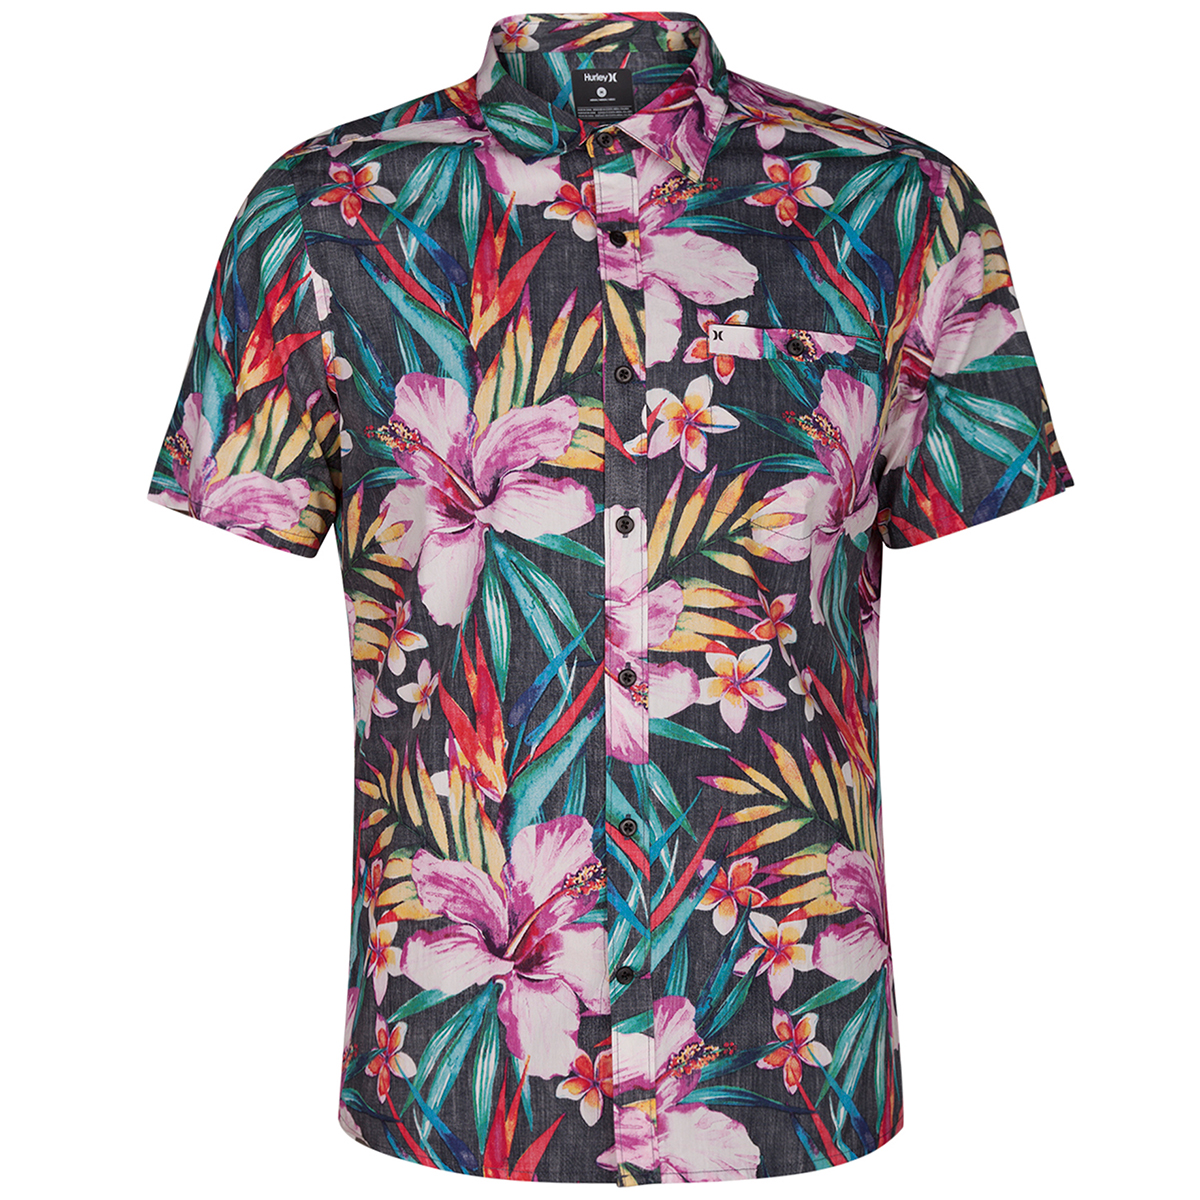 Hurley Guys' Garden Floral Woven Short-Sleeve Shirt - Black, XL